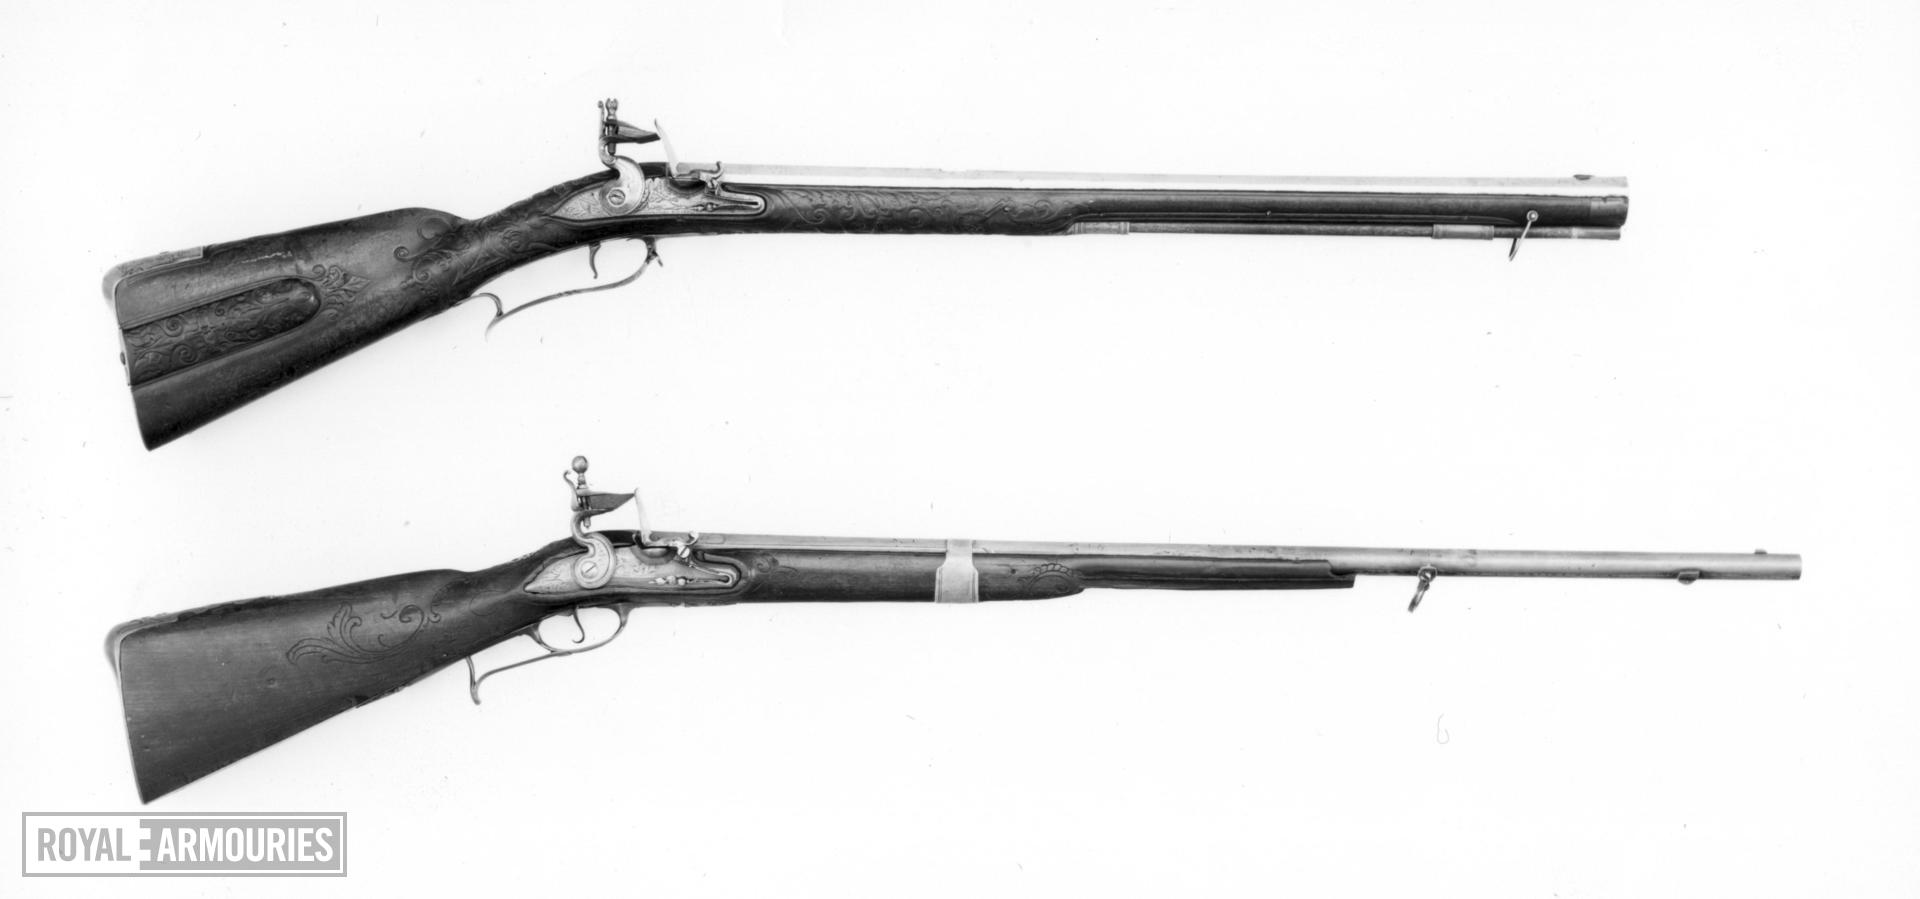 Flintlock muzzle-loading rifle - Unknown Lock with flat lockplate engraved with trophies and a helmeted figure.